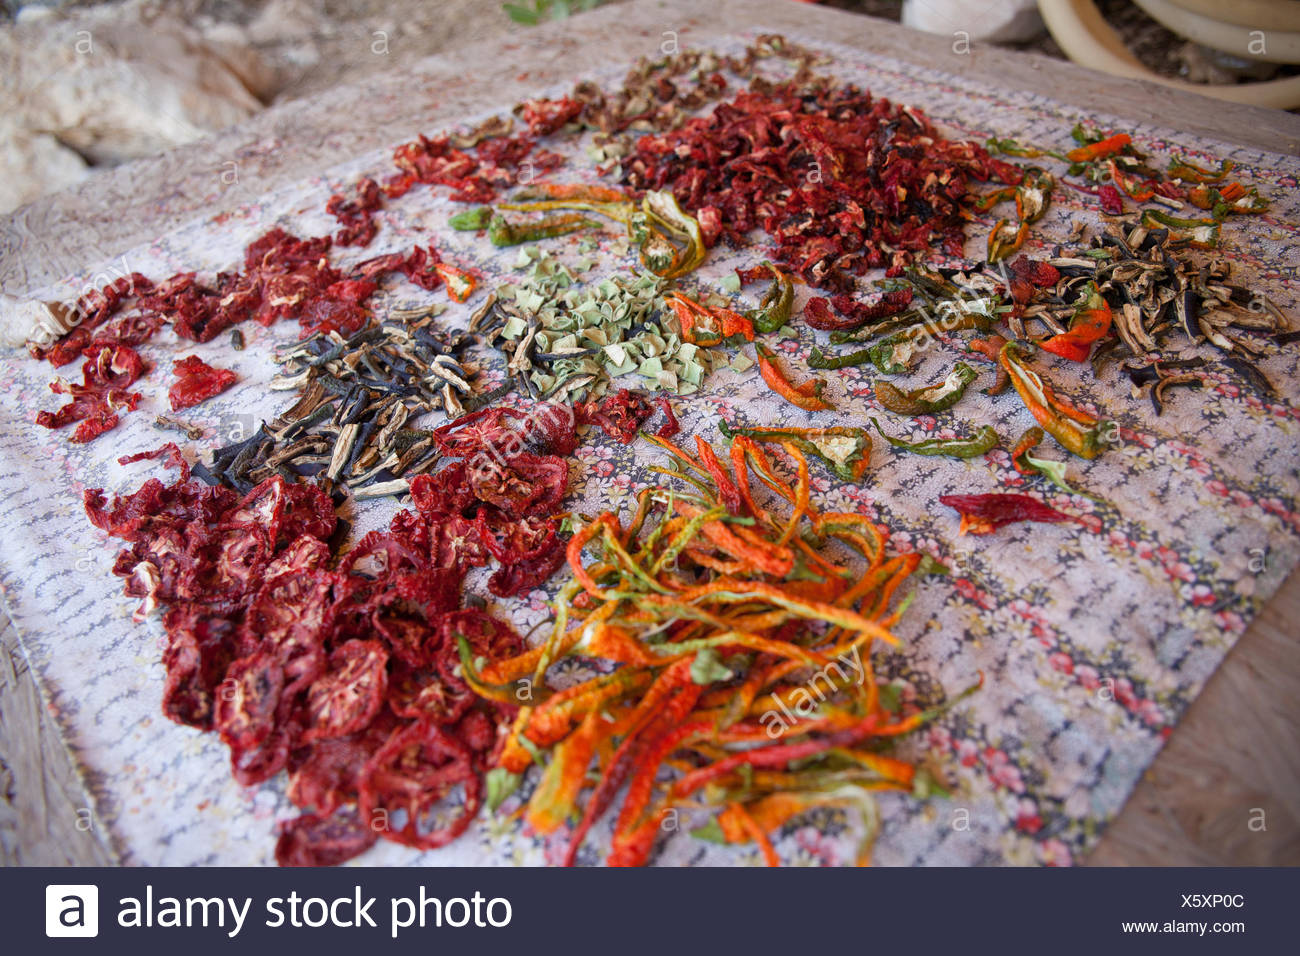 Dried Chilies On Sheet - Stock Image